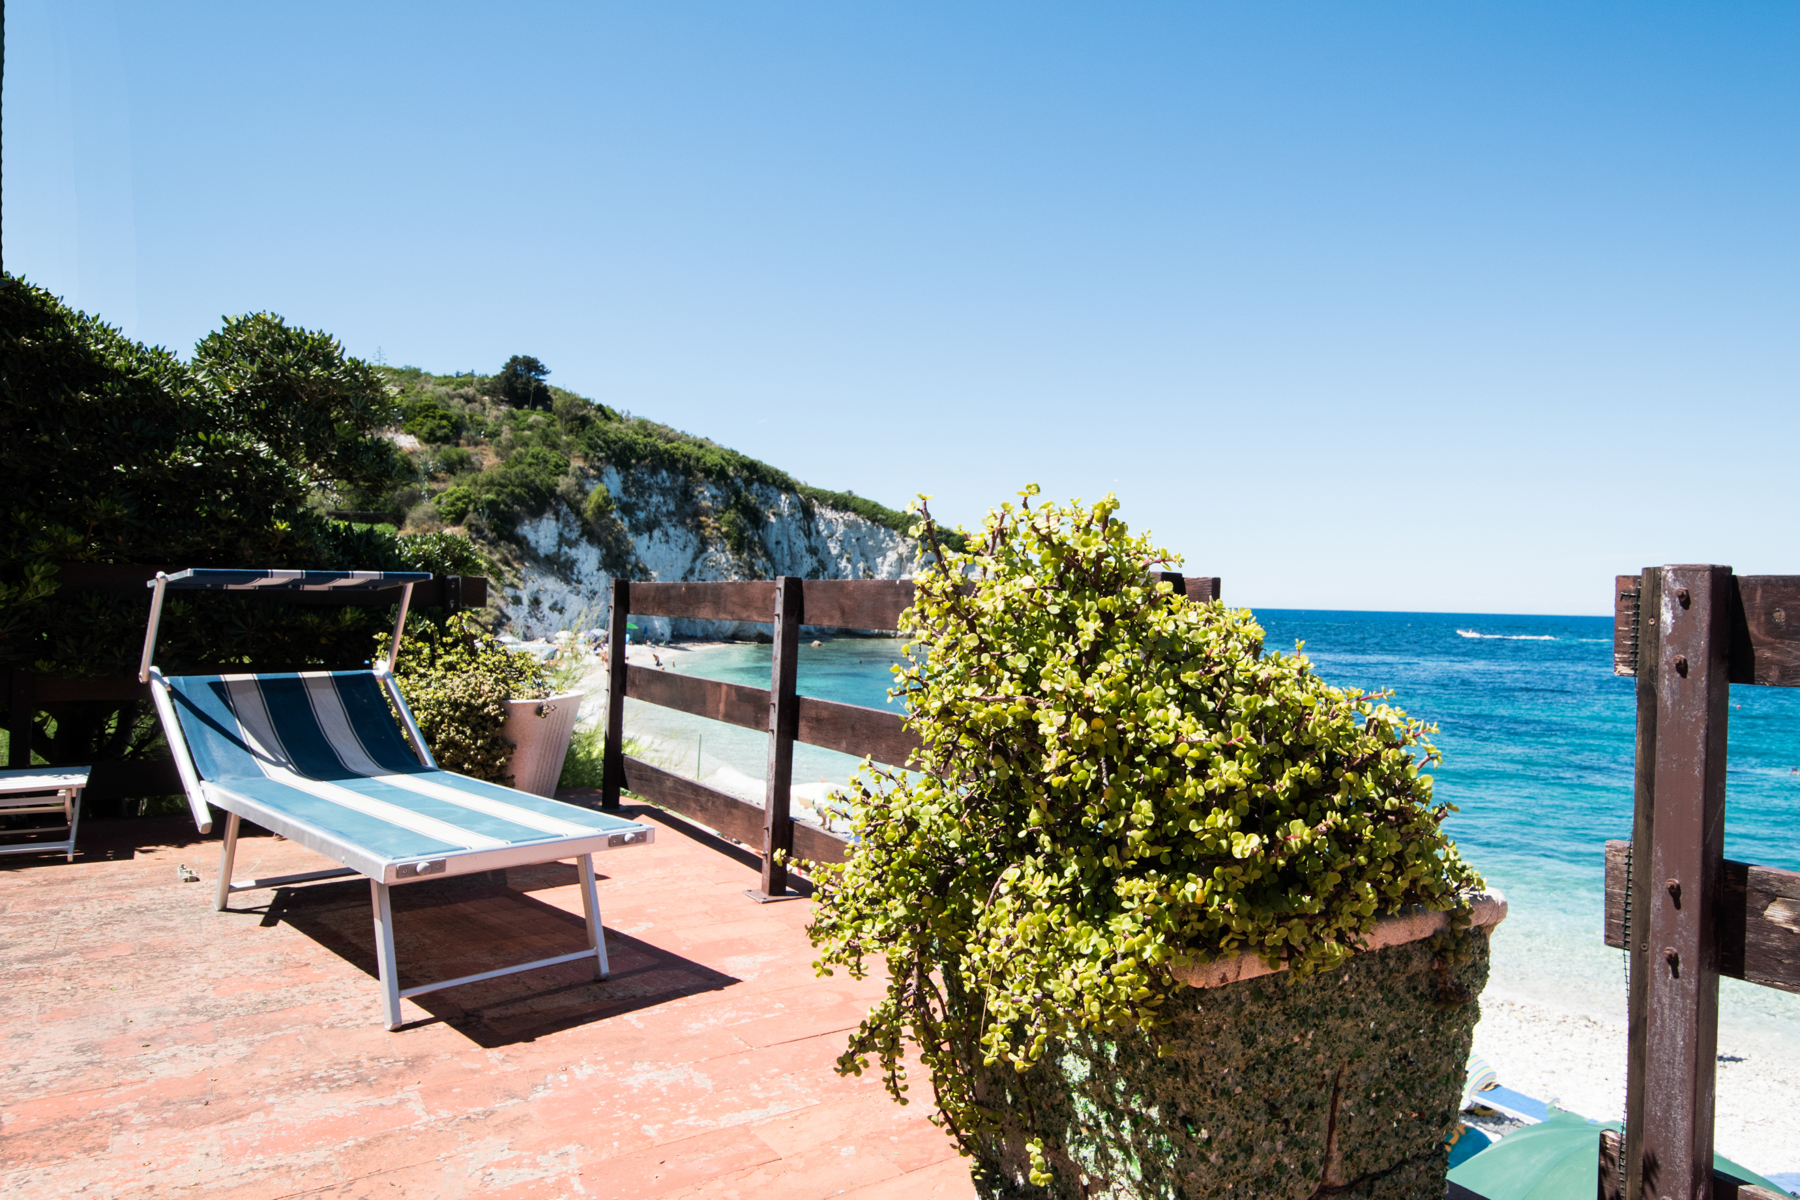 Additional photo for property listing at Unique beachfront villa with pool Via Einaudi Portoferraio, Livorno 57014 Italie